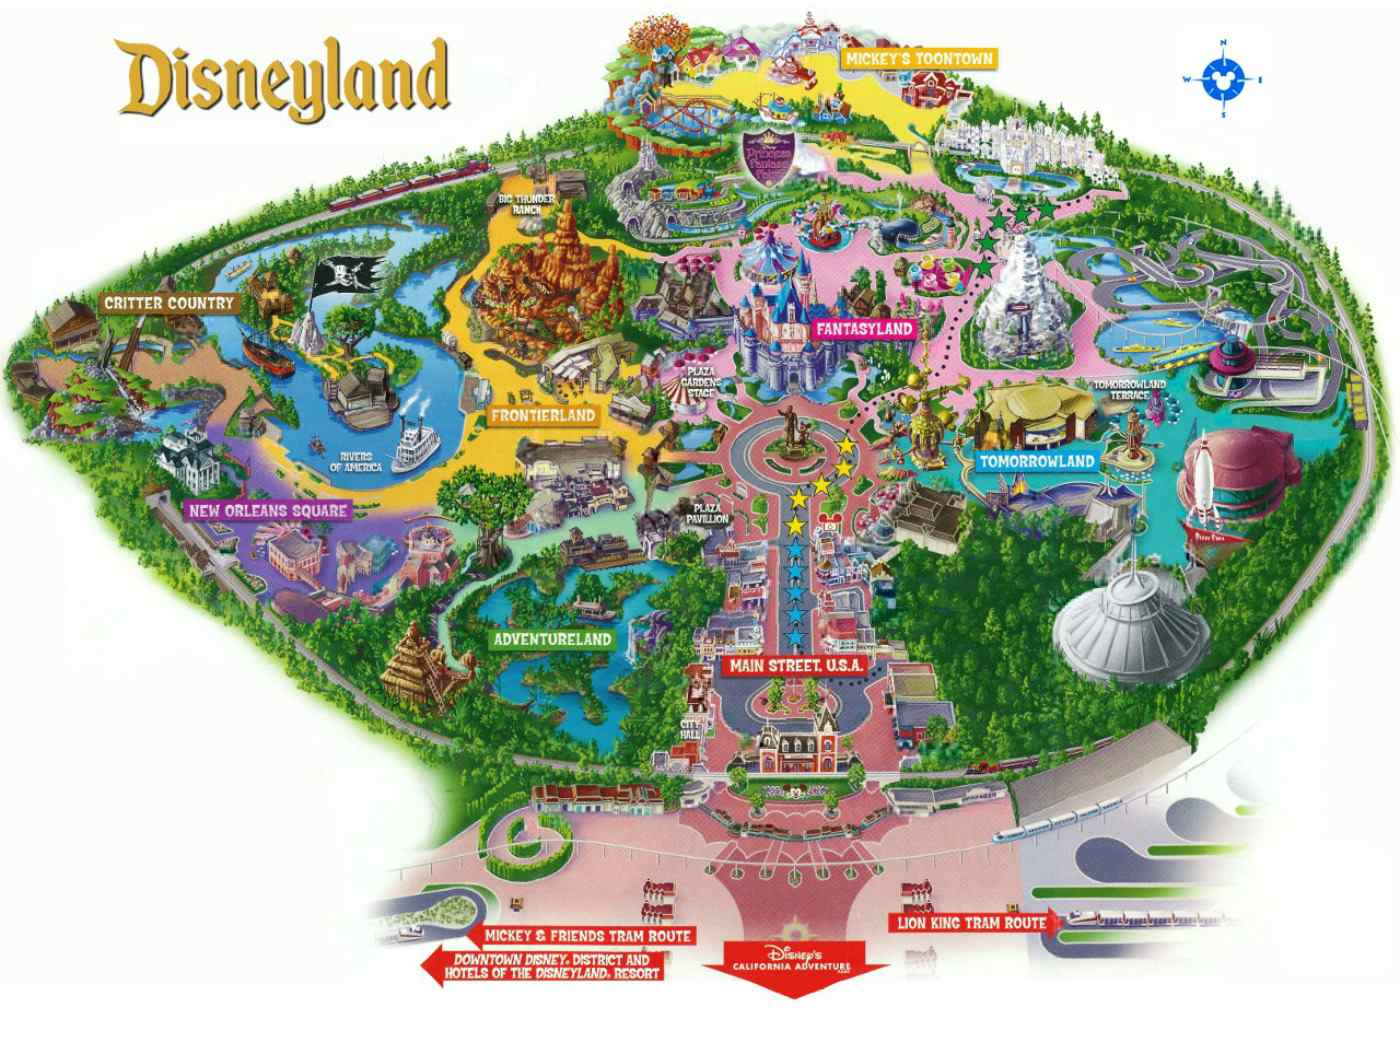 Maps of Disneyland Resort in Anaheim, California